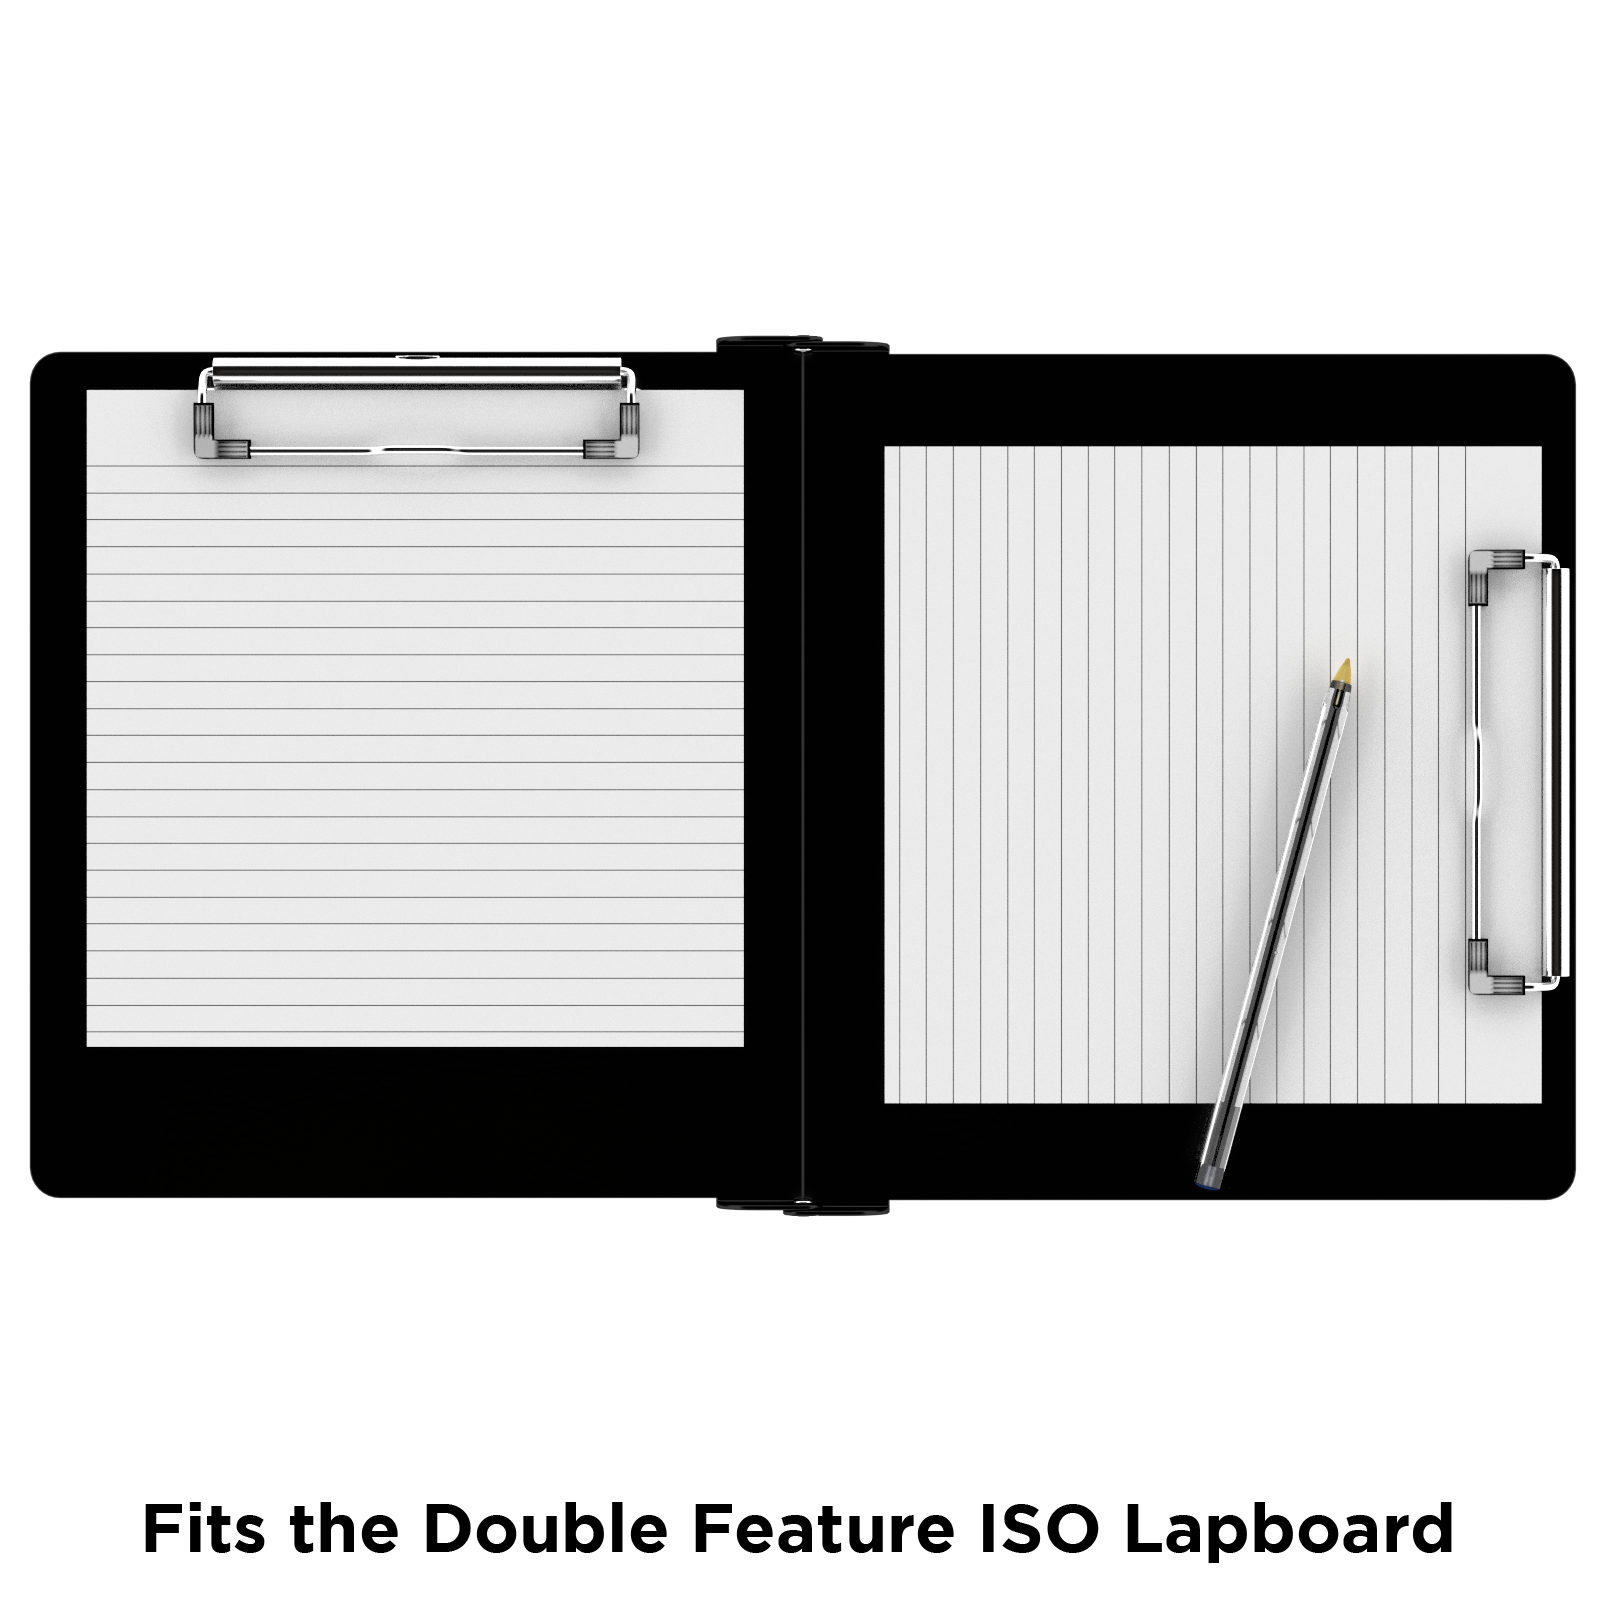 vector download Board clip double. Collection of free download